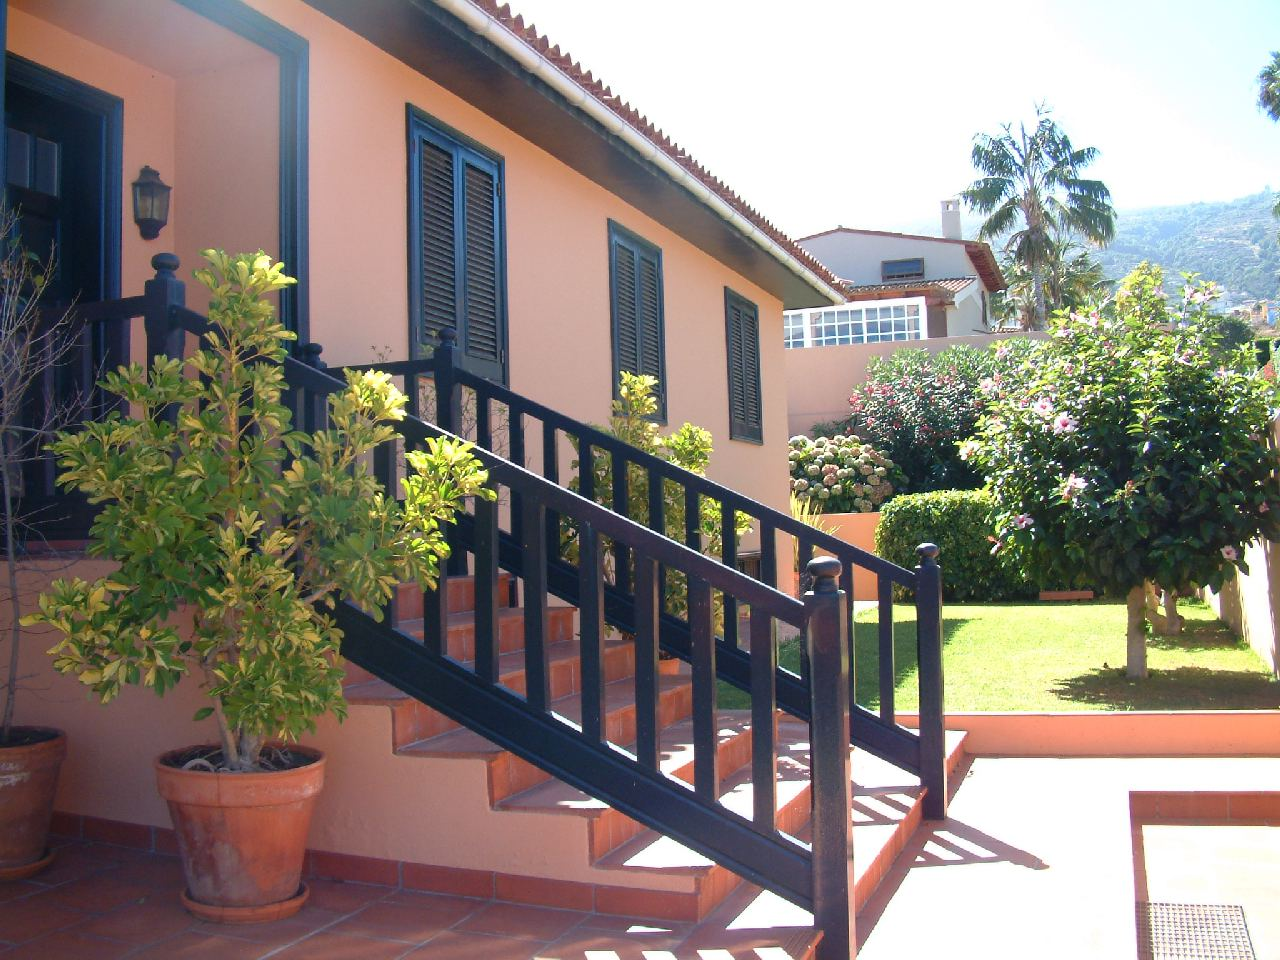 DETACHED HOUSE in LA OROTAVA,  of 500 m²